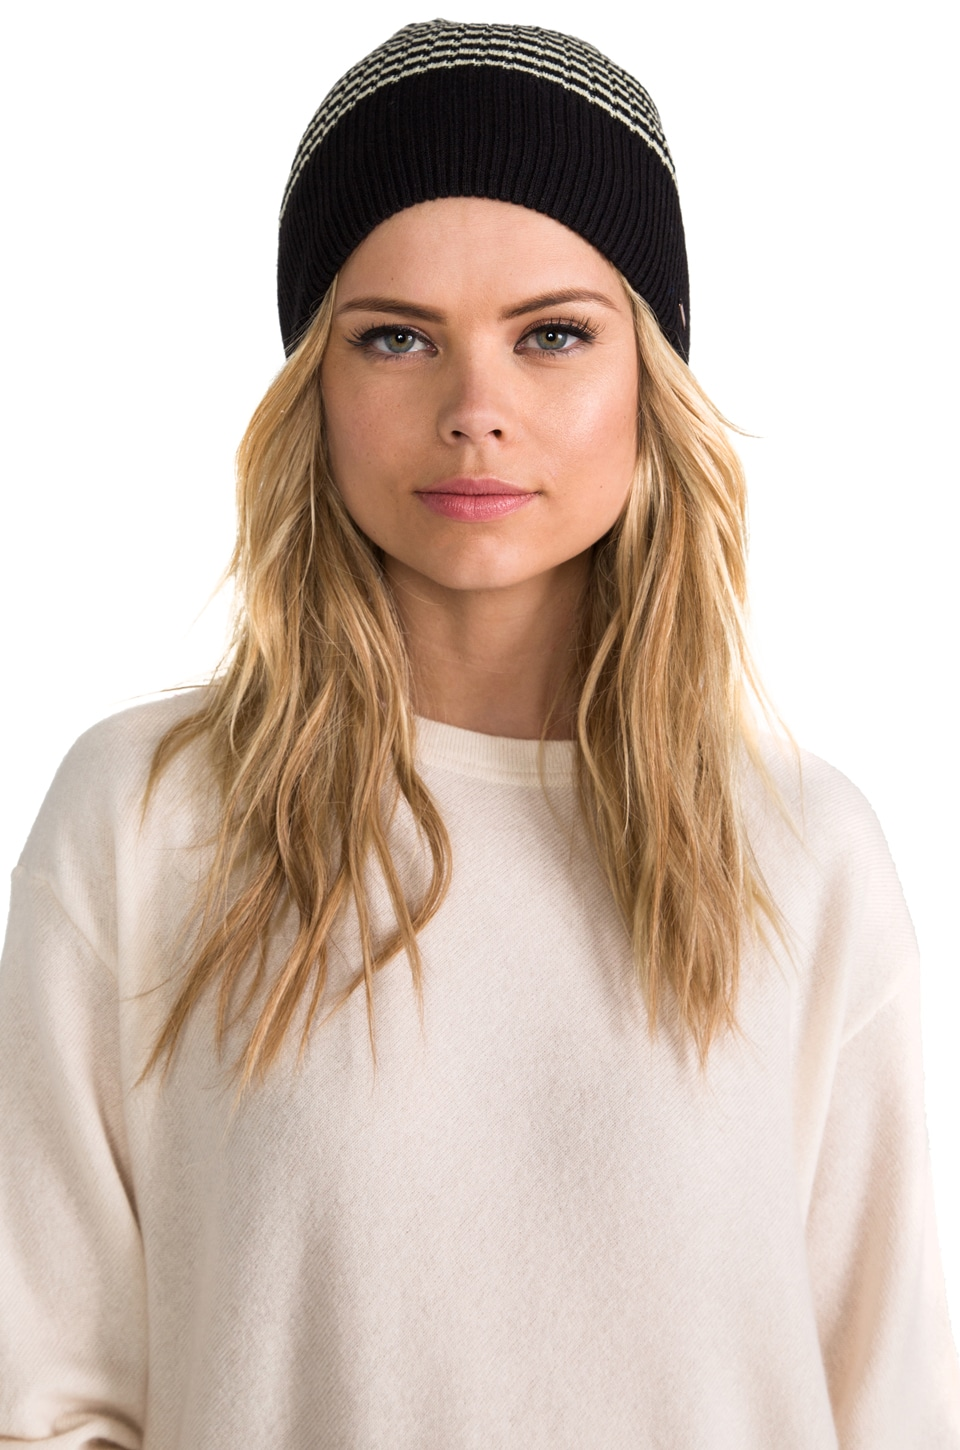 Free People Stripped Sailor Beanie in Black